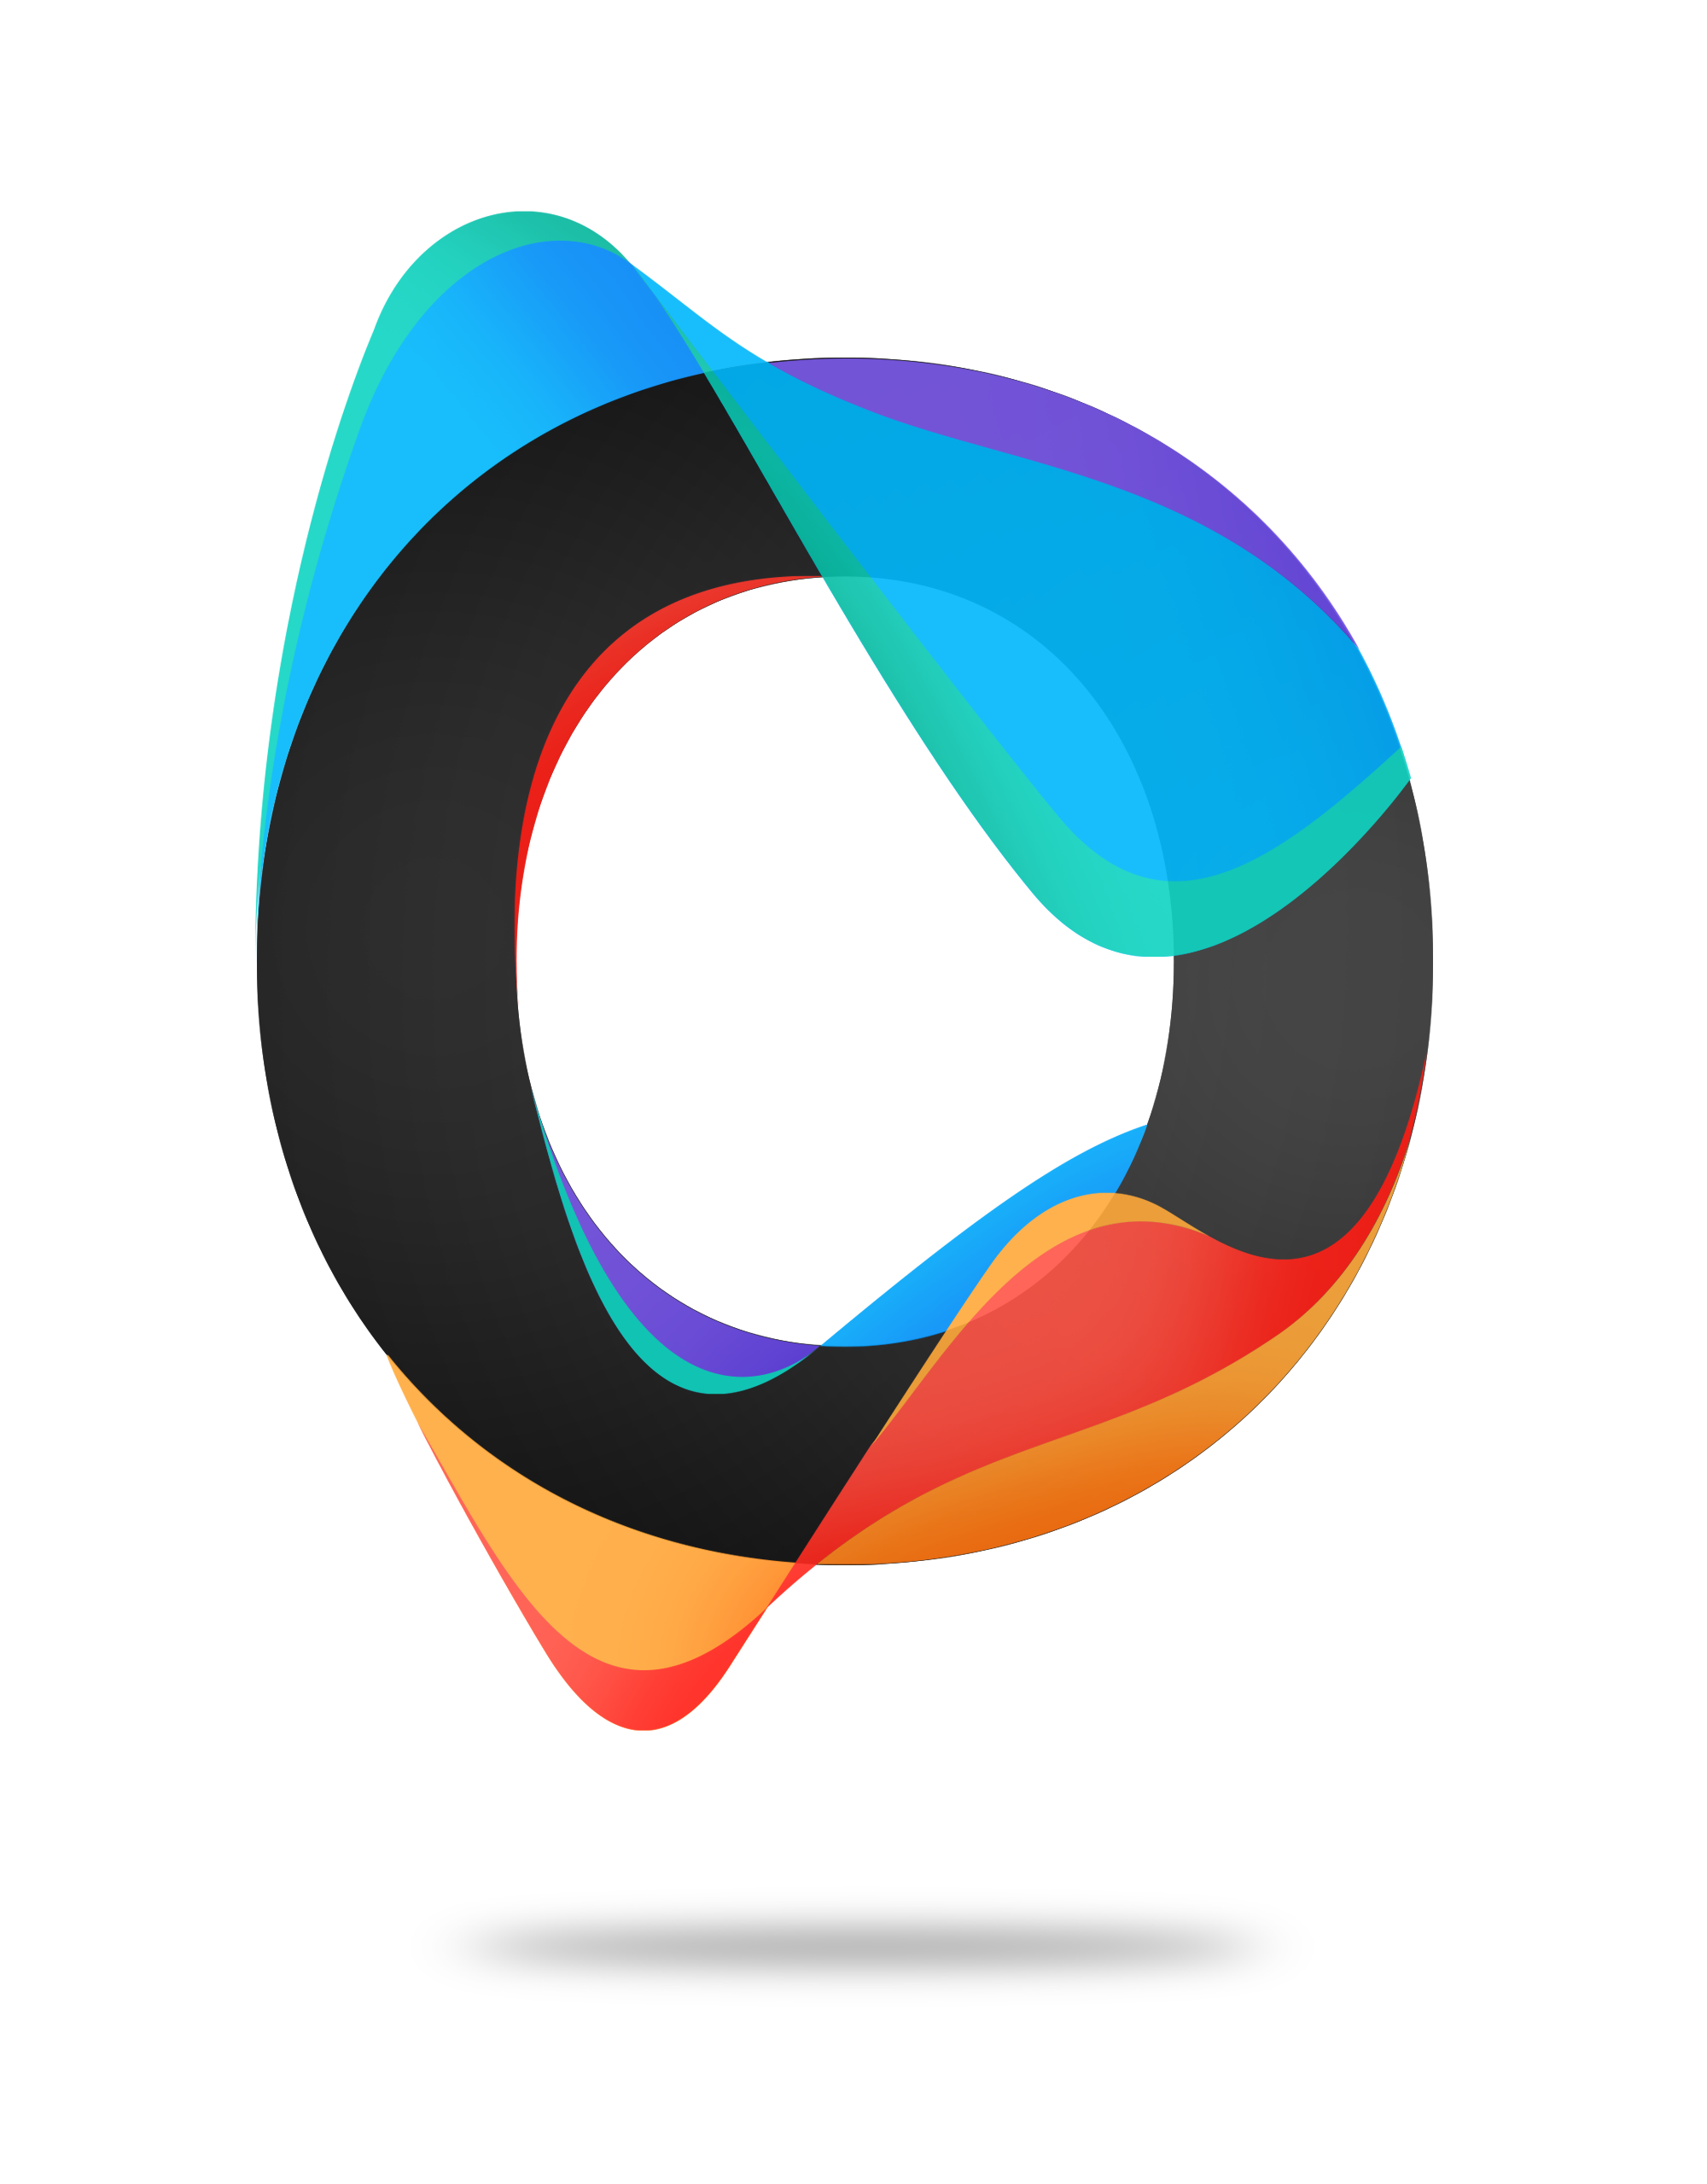 Opportunus logo, activate your ambitions